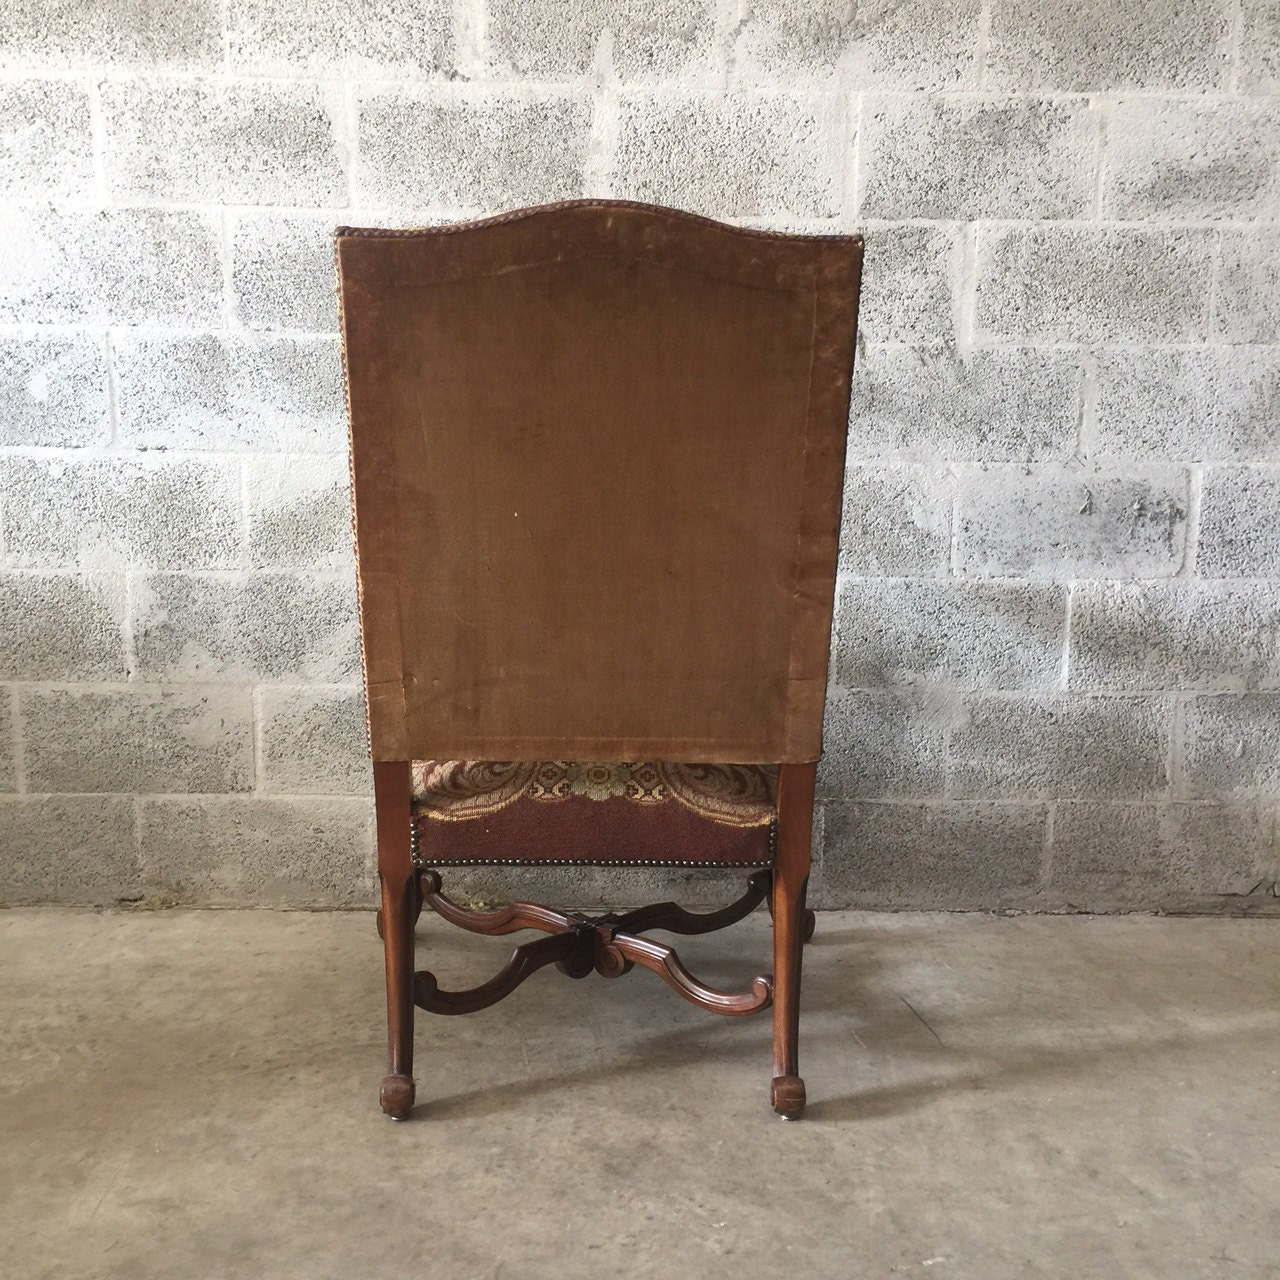 Antique french chair - Gallery Photo Gallery Photo Gallery Photo Gallery Photo Gallery Photo